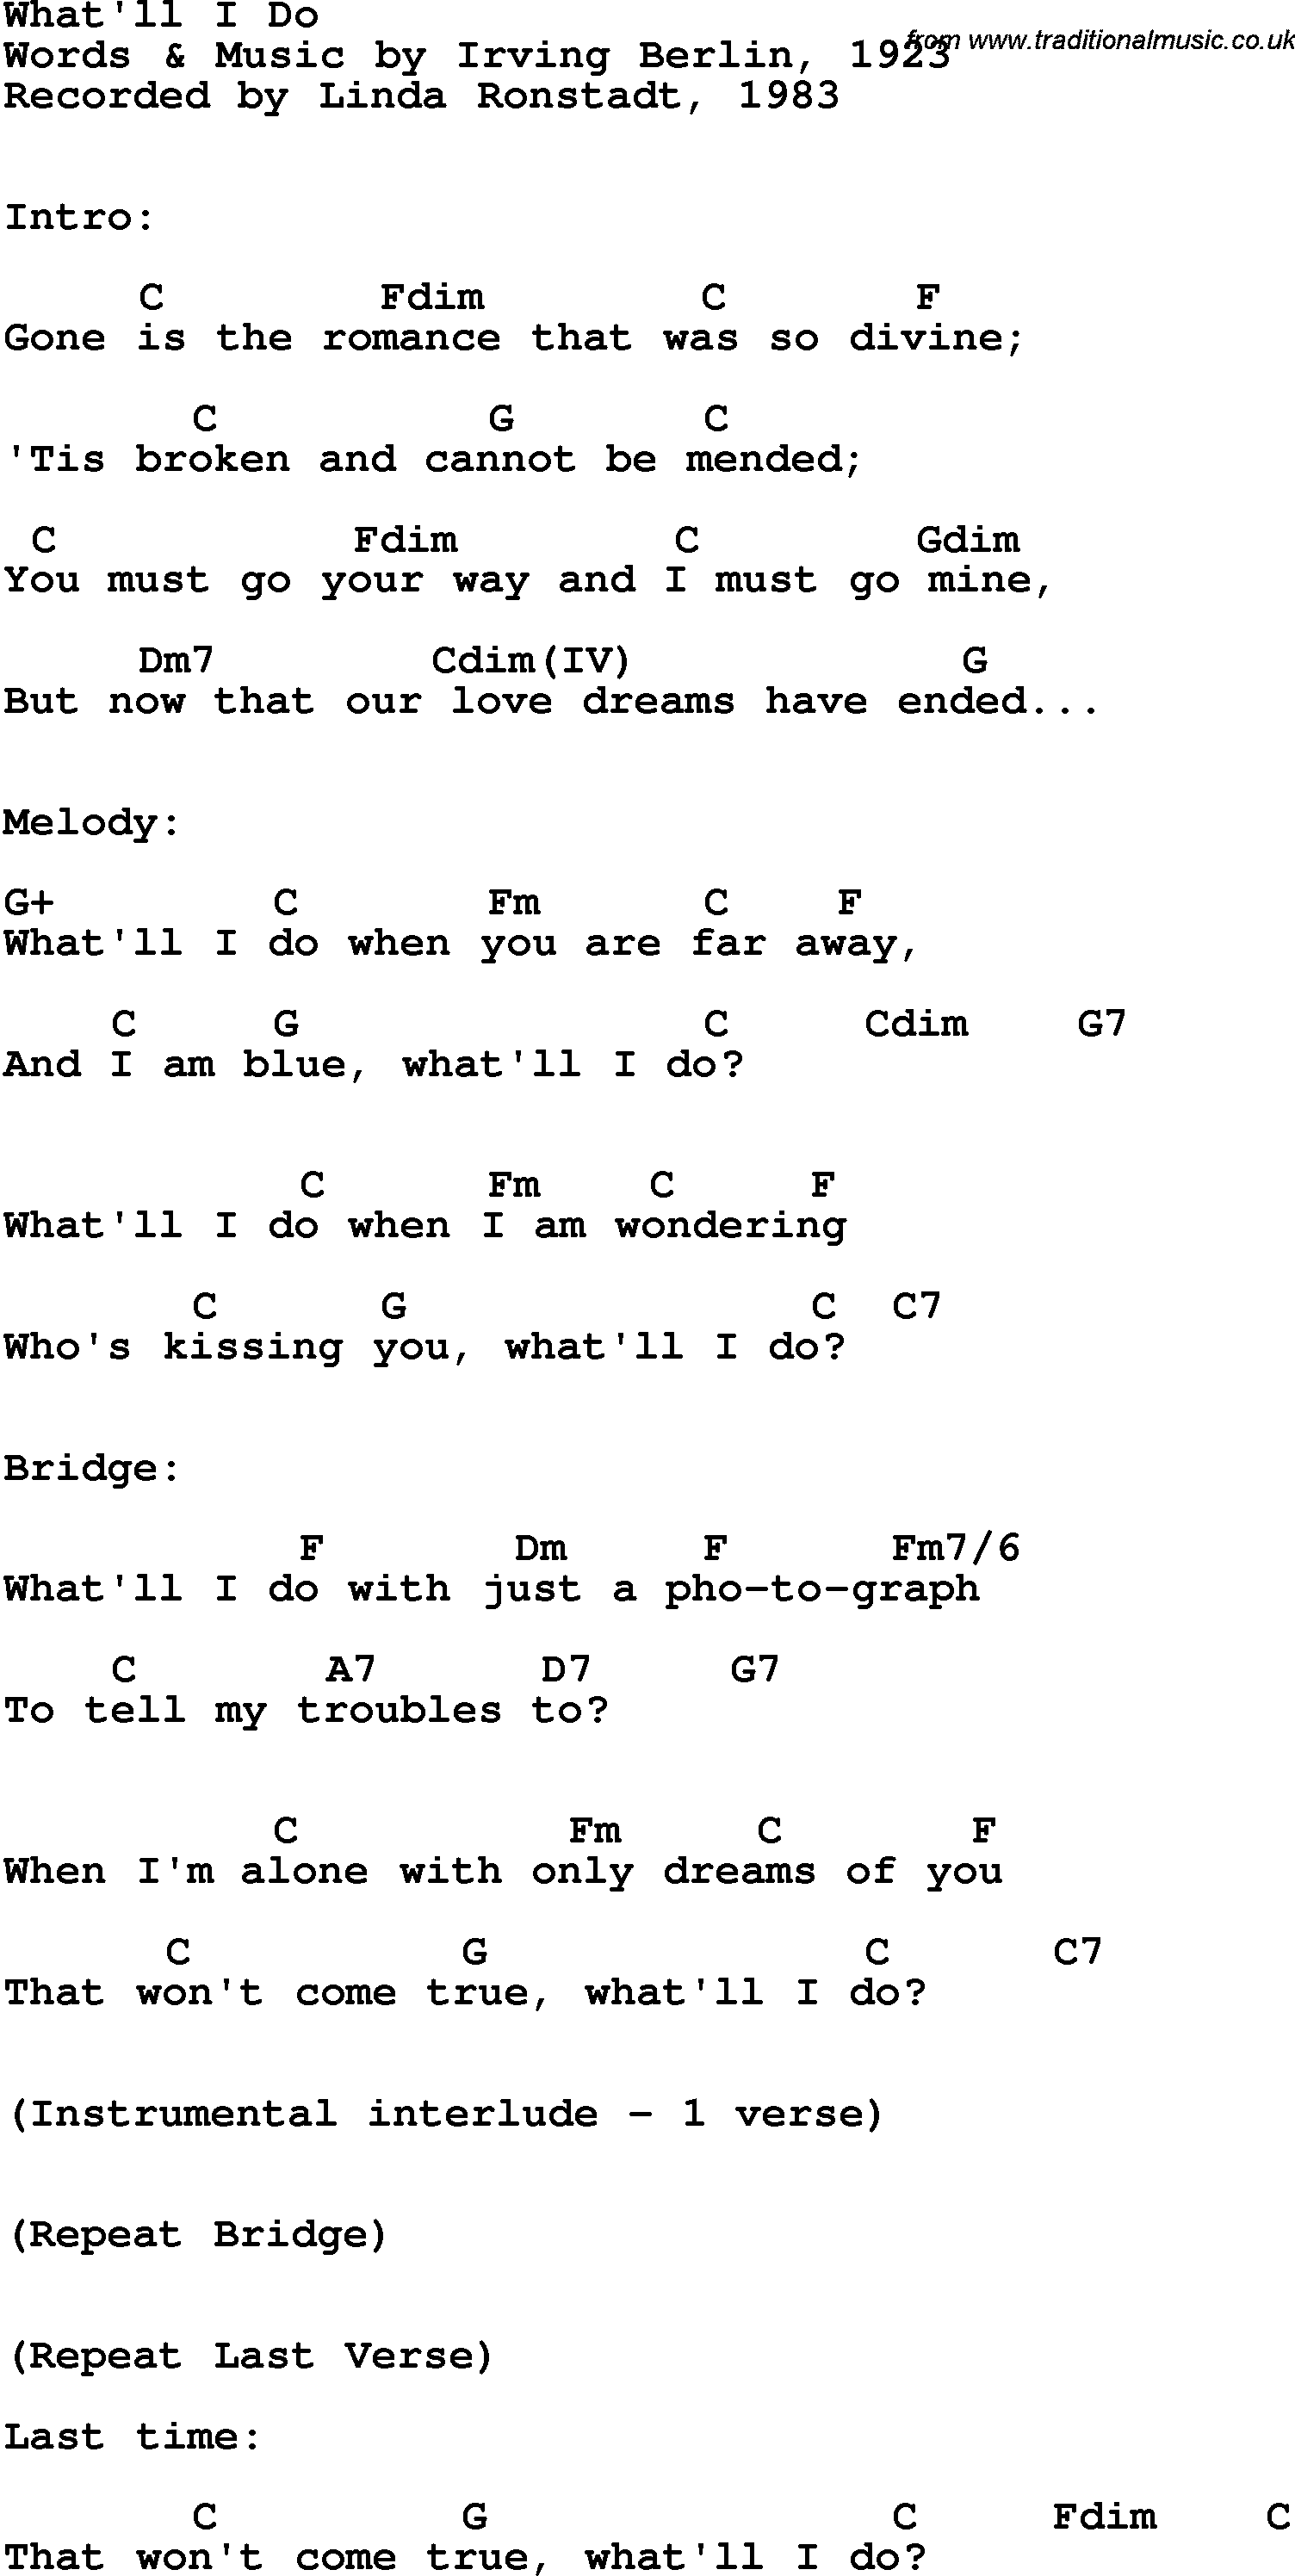 Song Lyrics With Guitar Chords For Whatll I Do Linda Ronstadt 1983